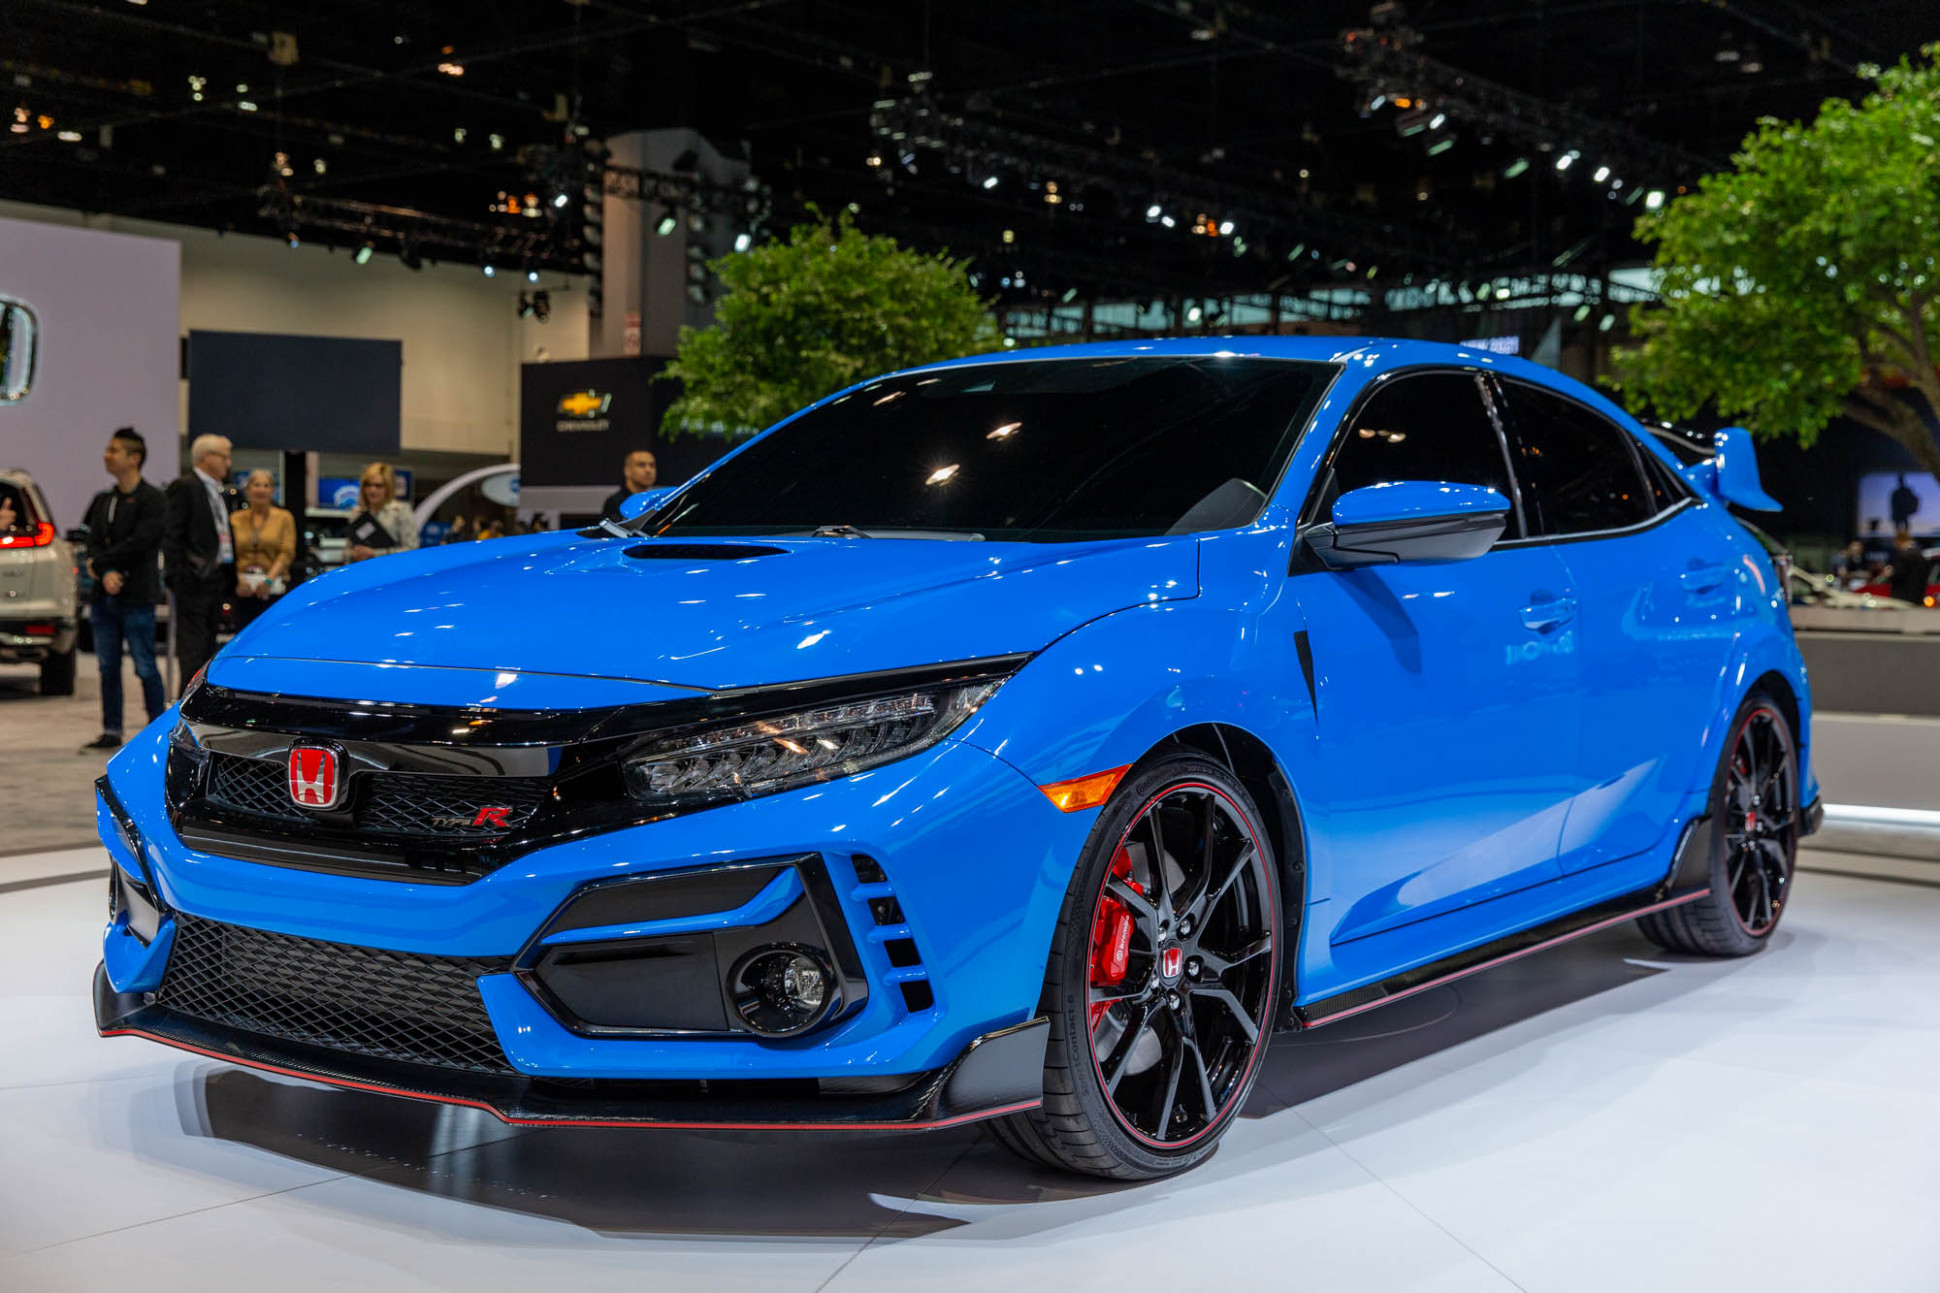 8 Honda Civic Type R brings upgrades, track-focused flagship - honda type r 2020 specs